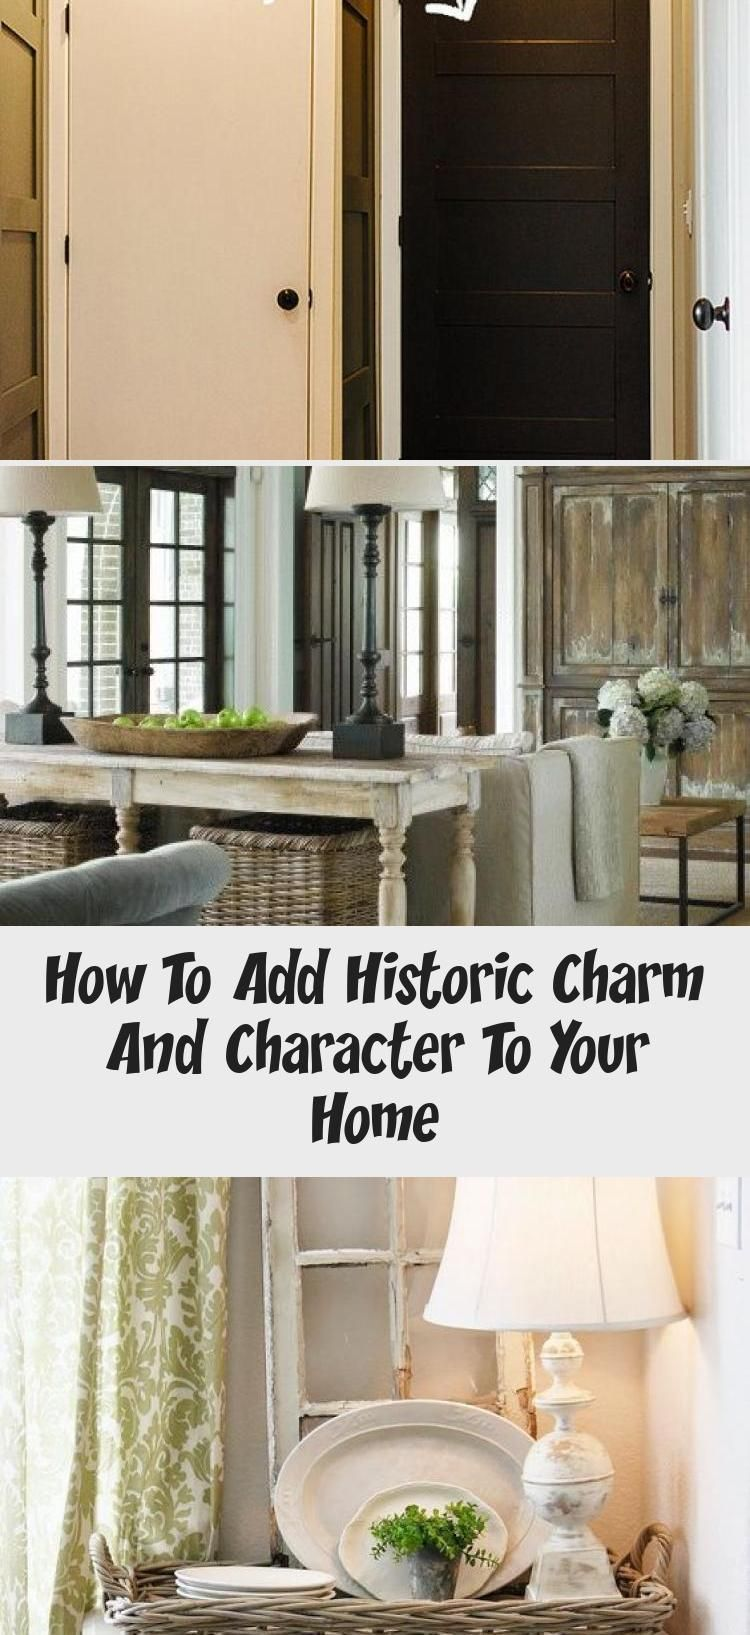 How To Add Historic Charm And Character To Your Home - home design decor